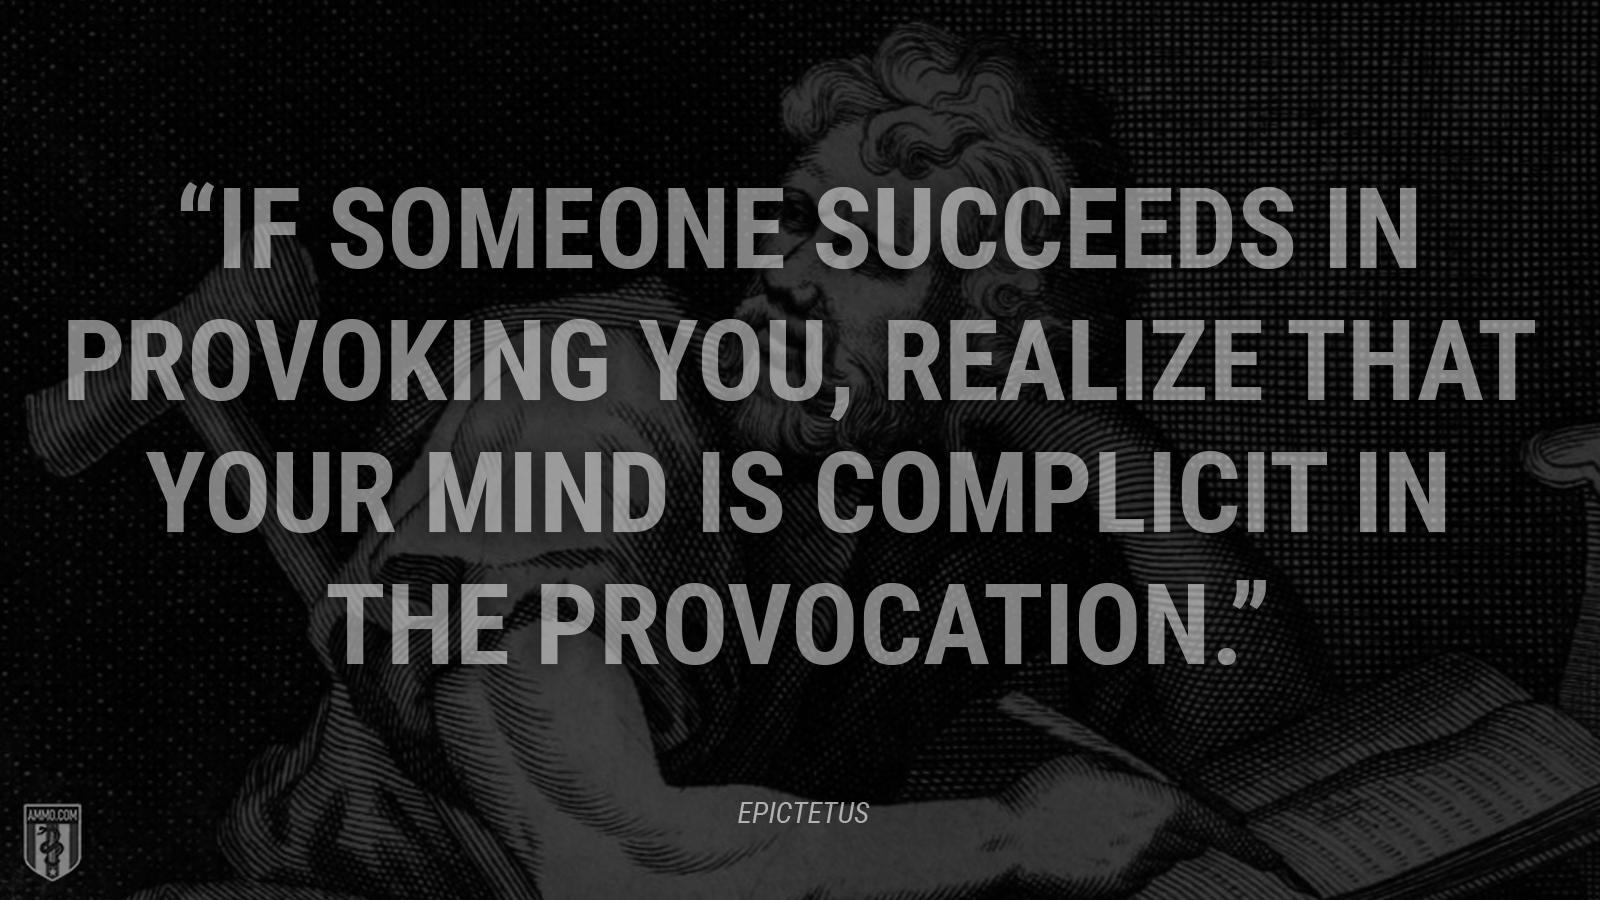 """If someone succeeds in provoking you, realize that your mind is complicit in the provocation."" - Epictetus"